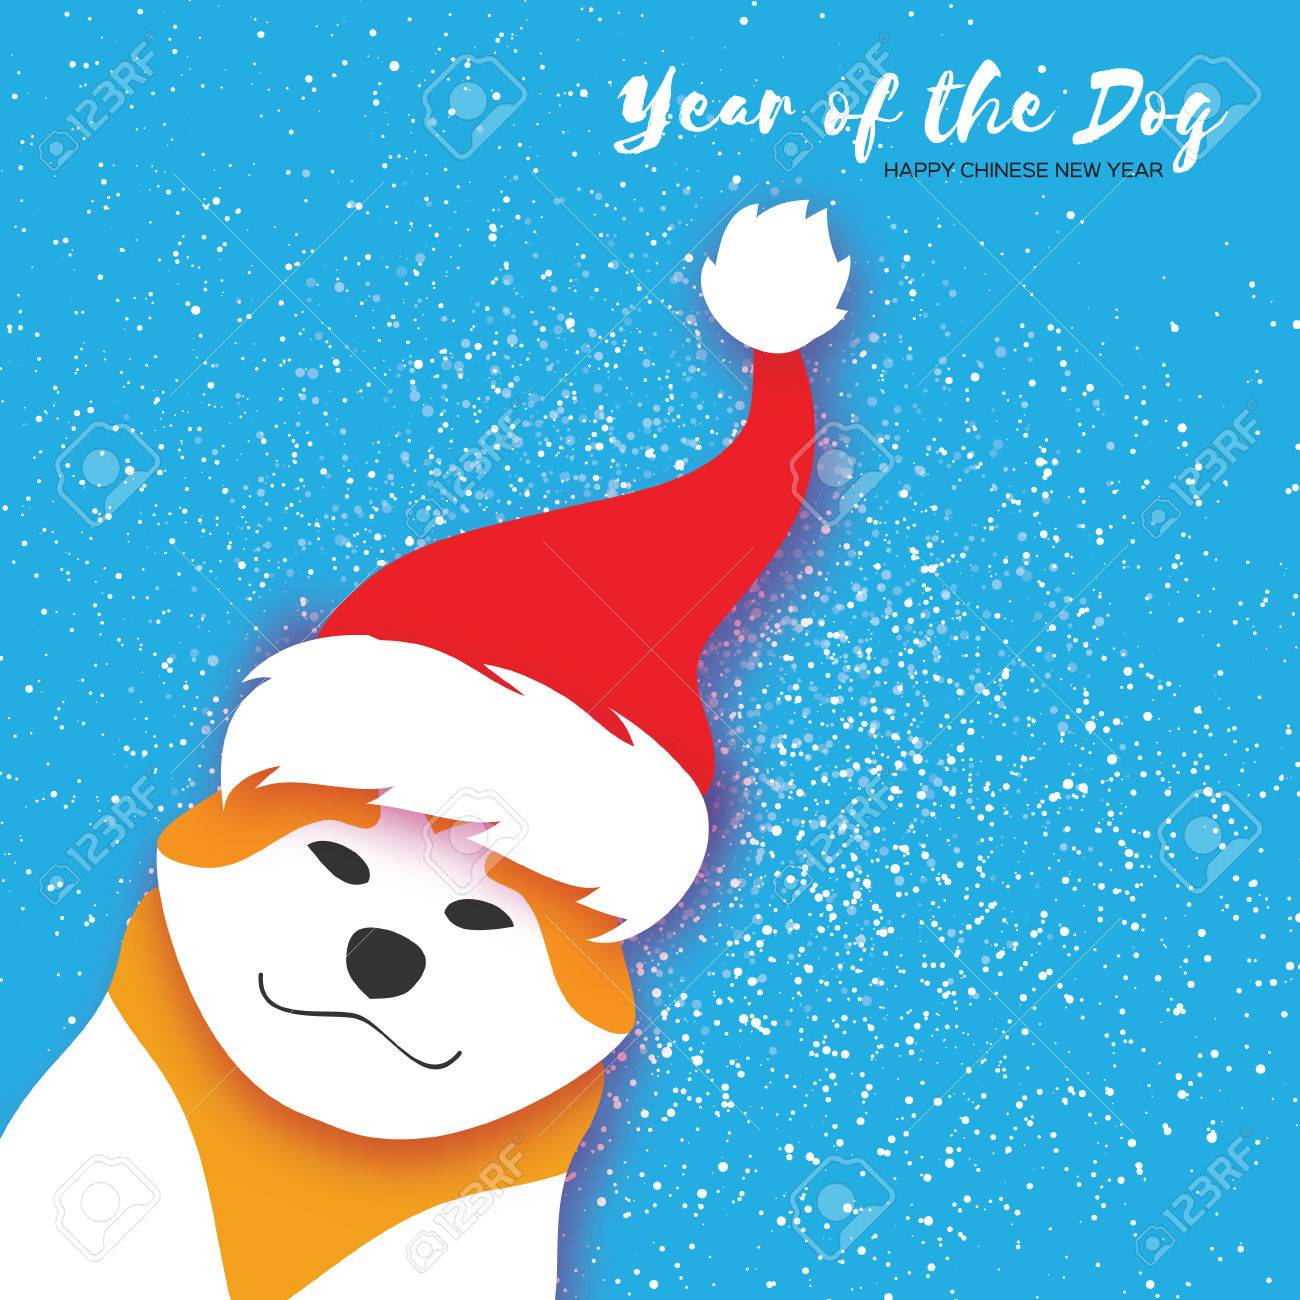 2018 chinese year of the dog happy chinese new year greeting 2018 chinese year of the dog happy chinese new year greeting card paper cut kristyandbryce Images